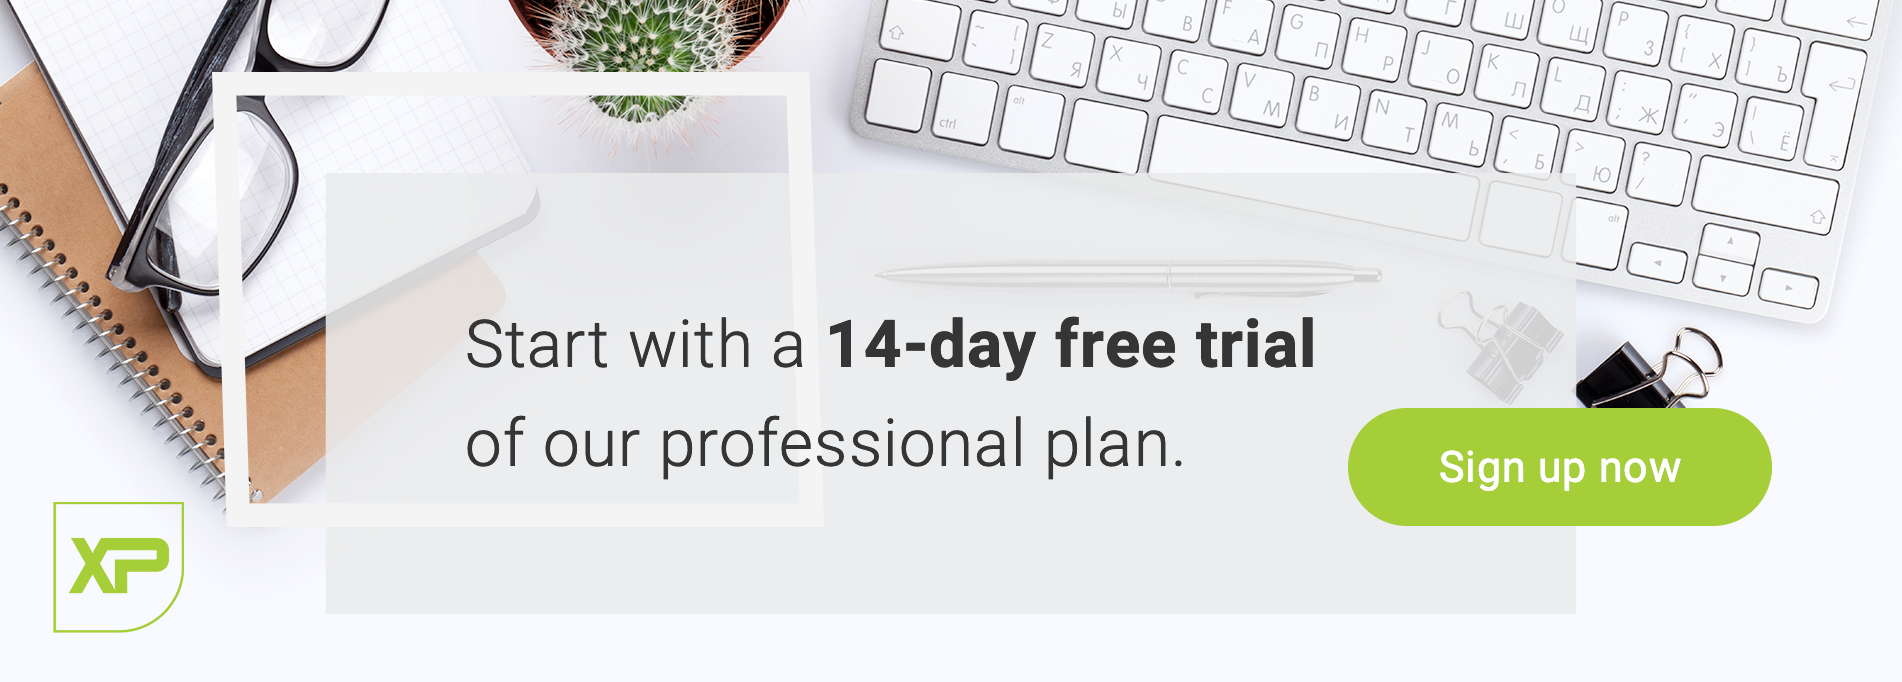 30 day free trial bountixp